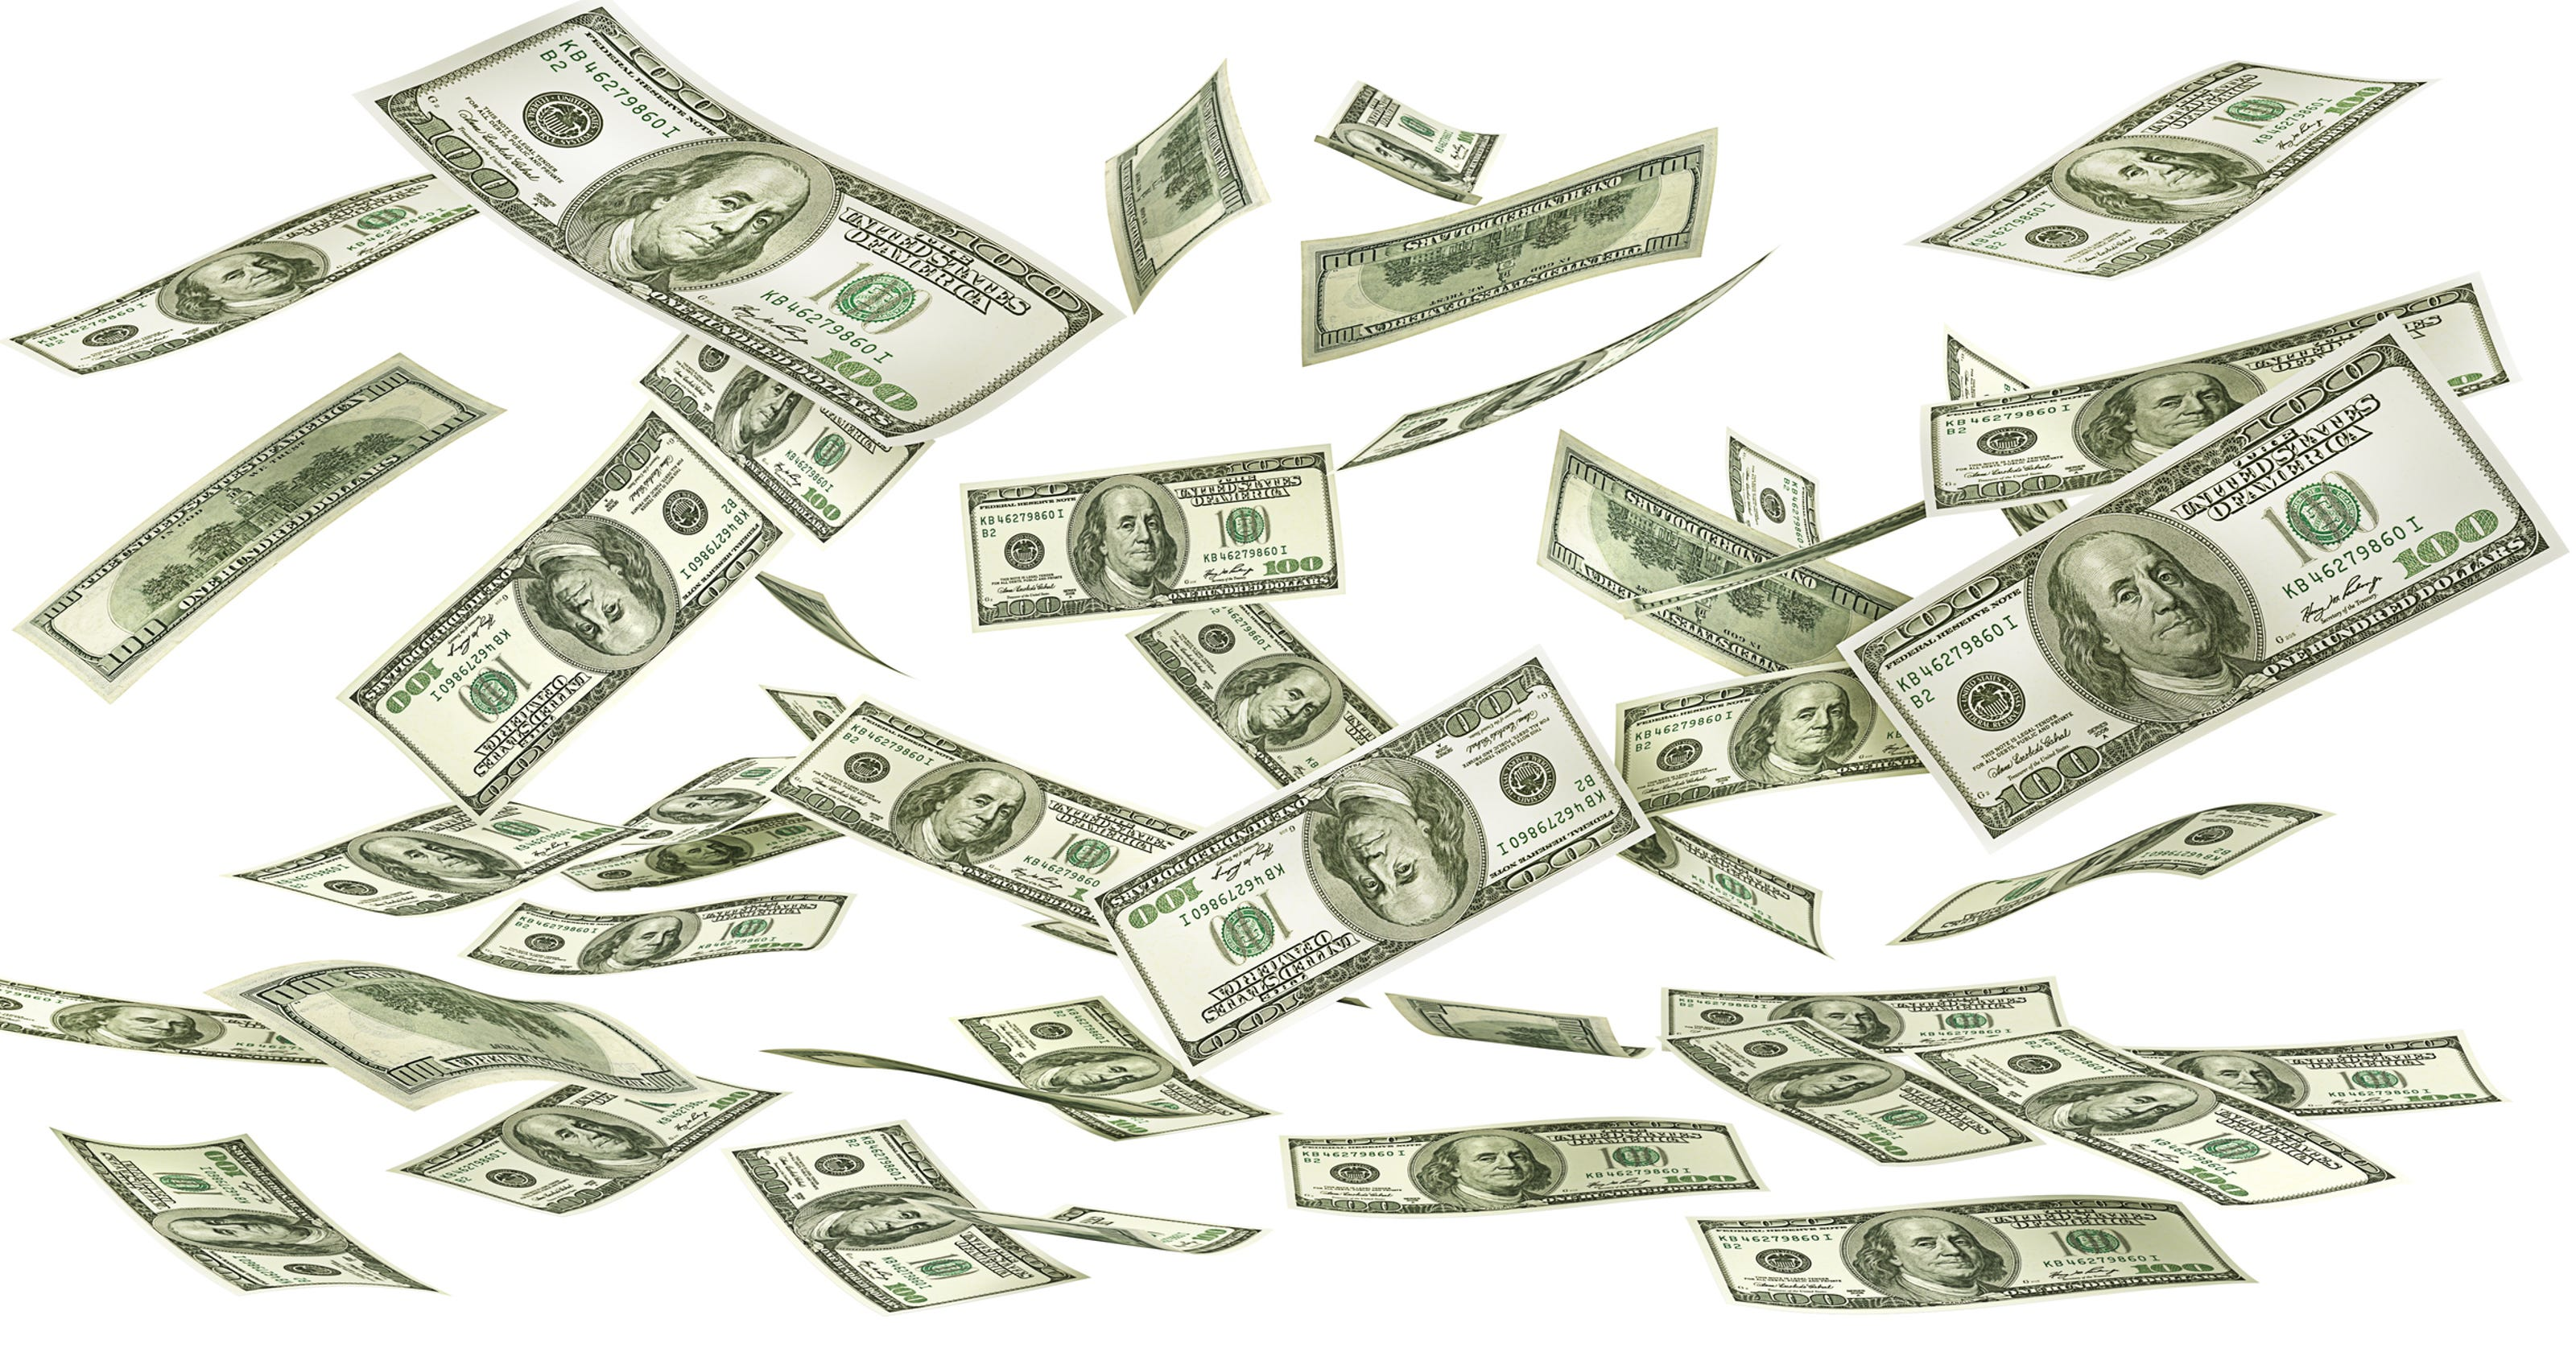 6-figure mayors: At least 43 NJ mayors make over $100K from